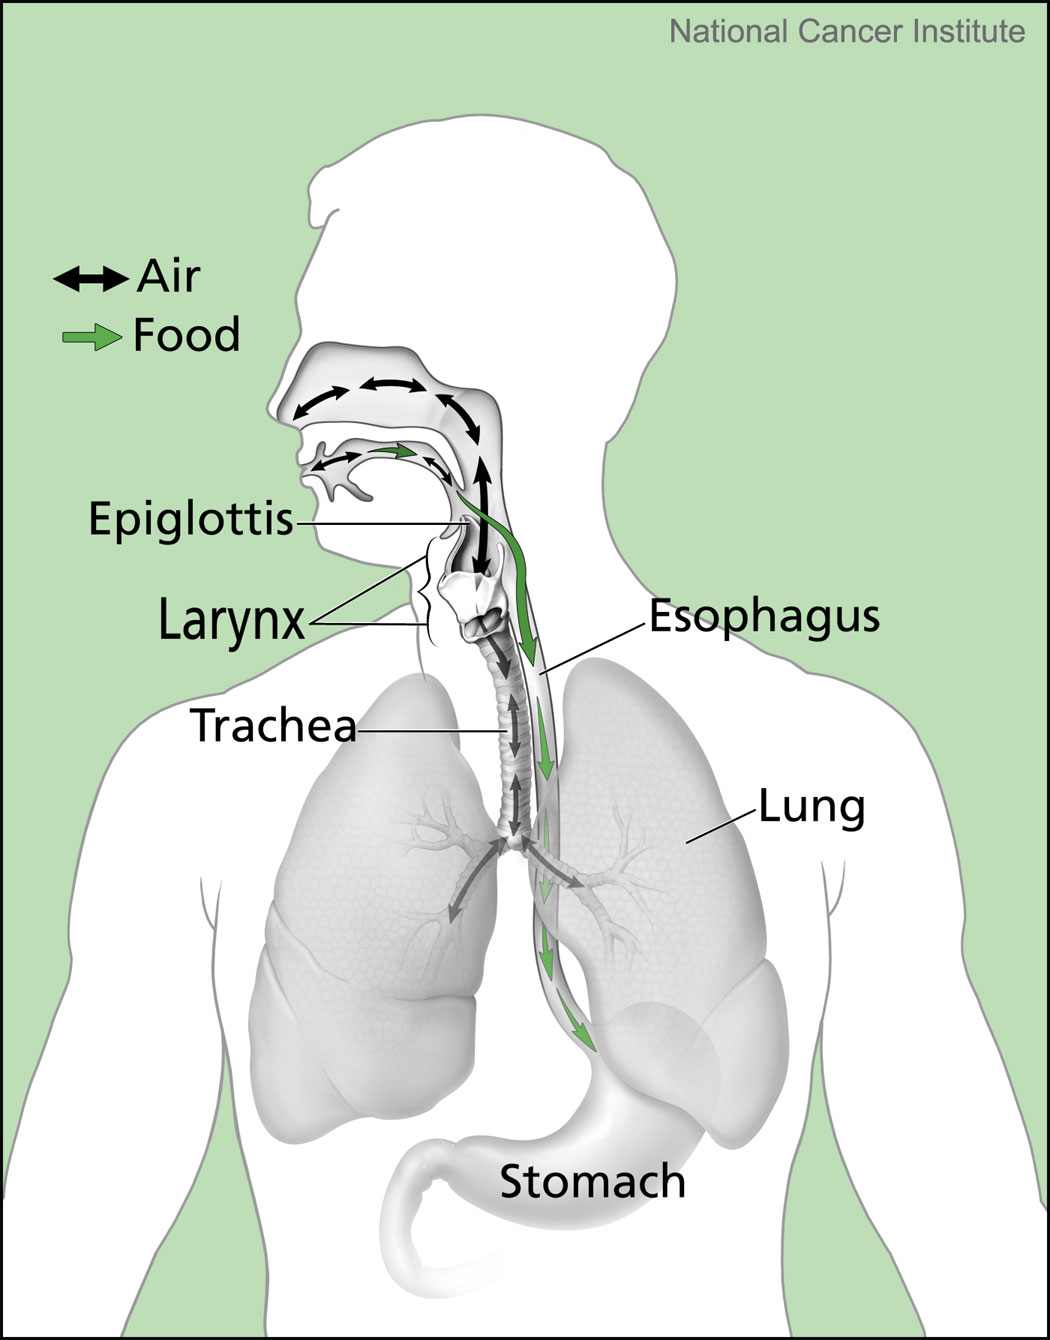 hight resolution of 20190329 nci esophagus diagram